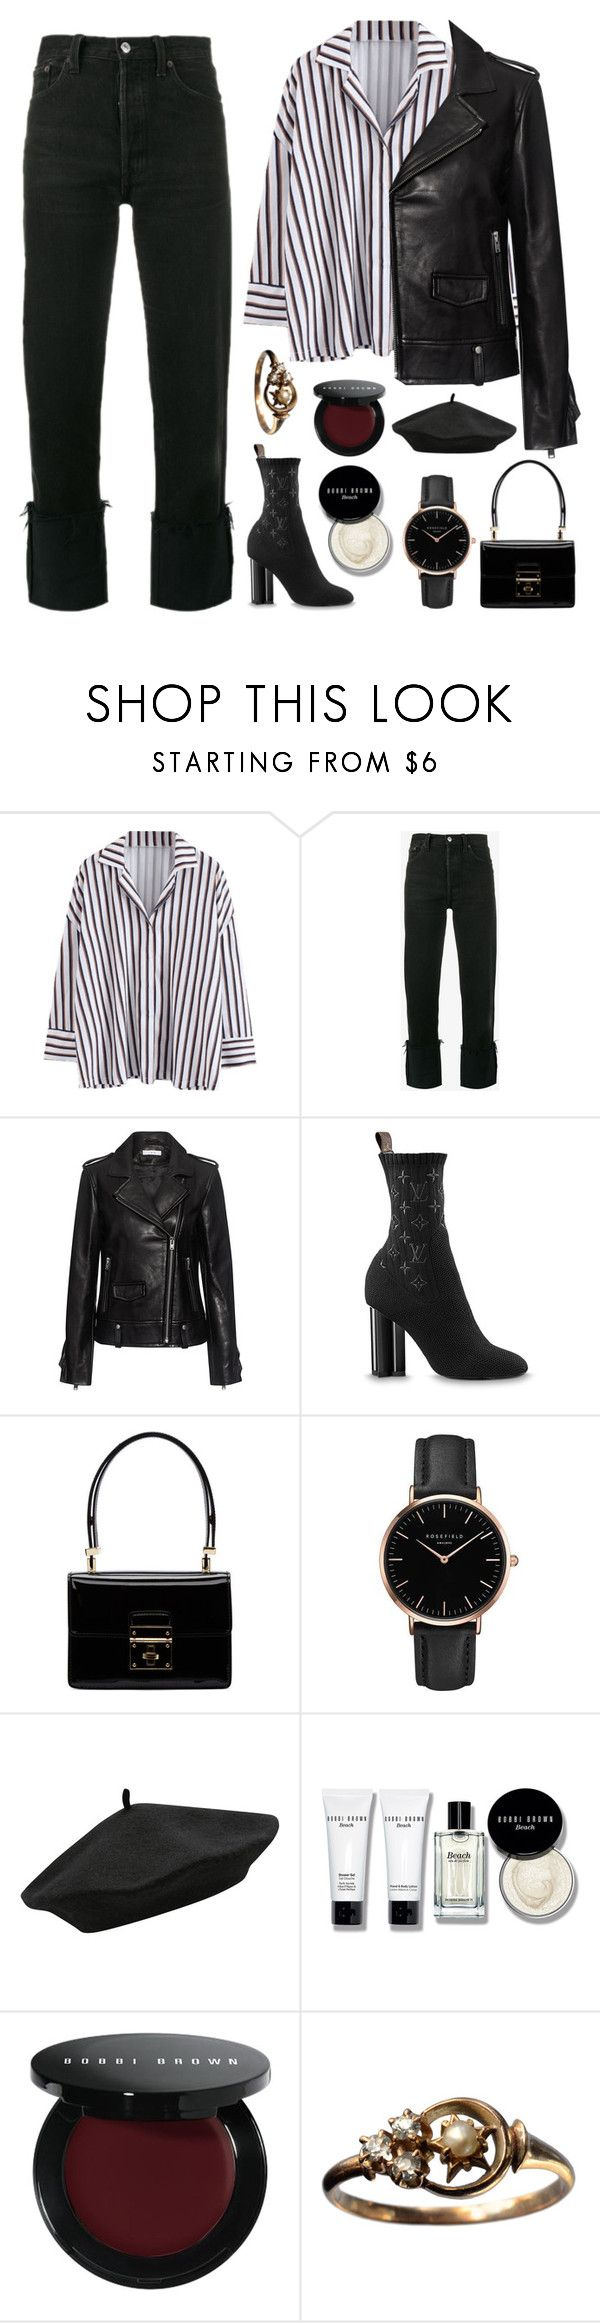 """black beret"" by typicalgemini ❤ liked on Polyvore featuring RE/DONE, IRO, Dolce&Gabbana, Topshop, M&Co and Bobbi Brown Cosmetics"